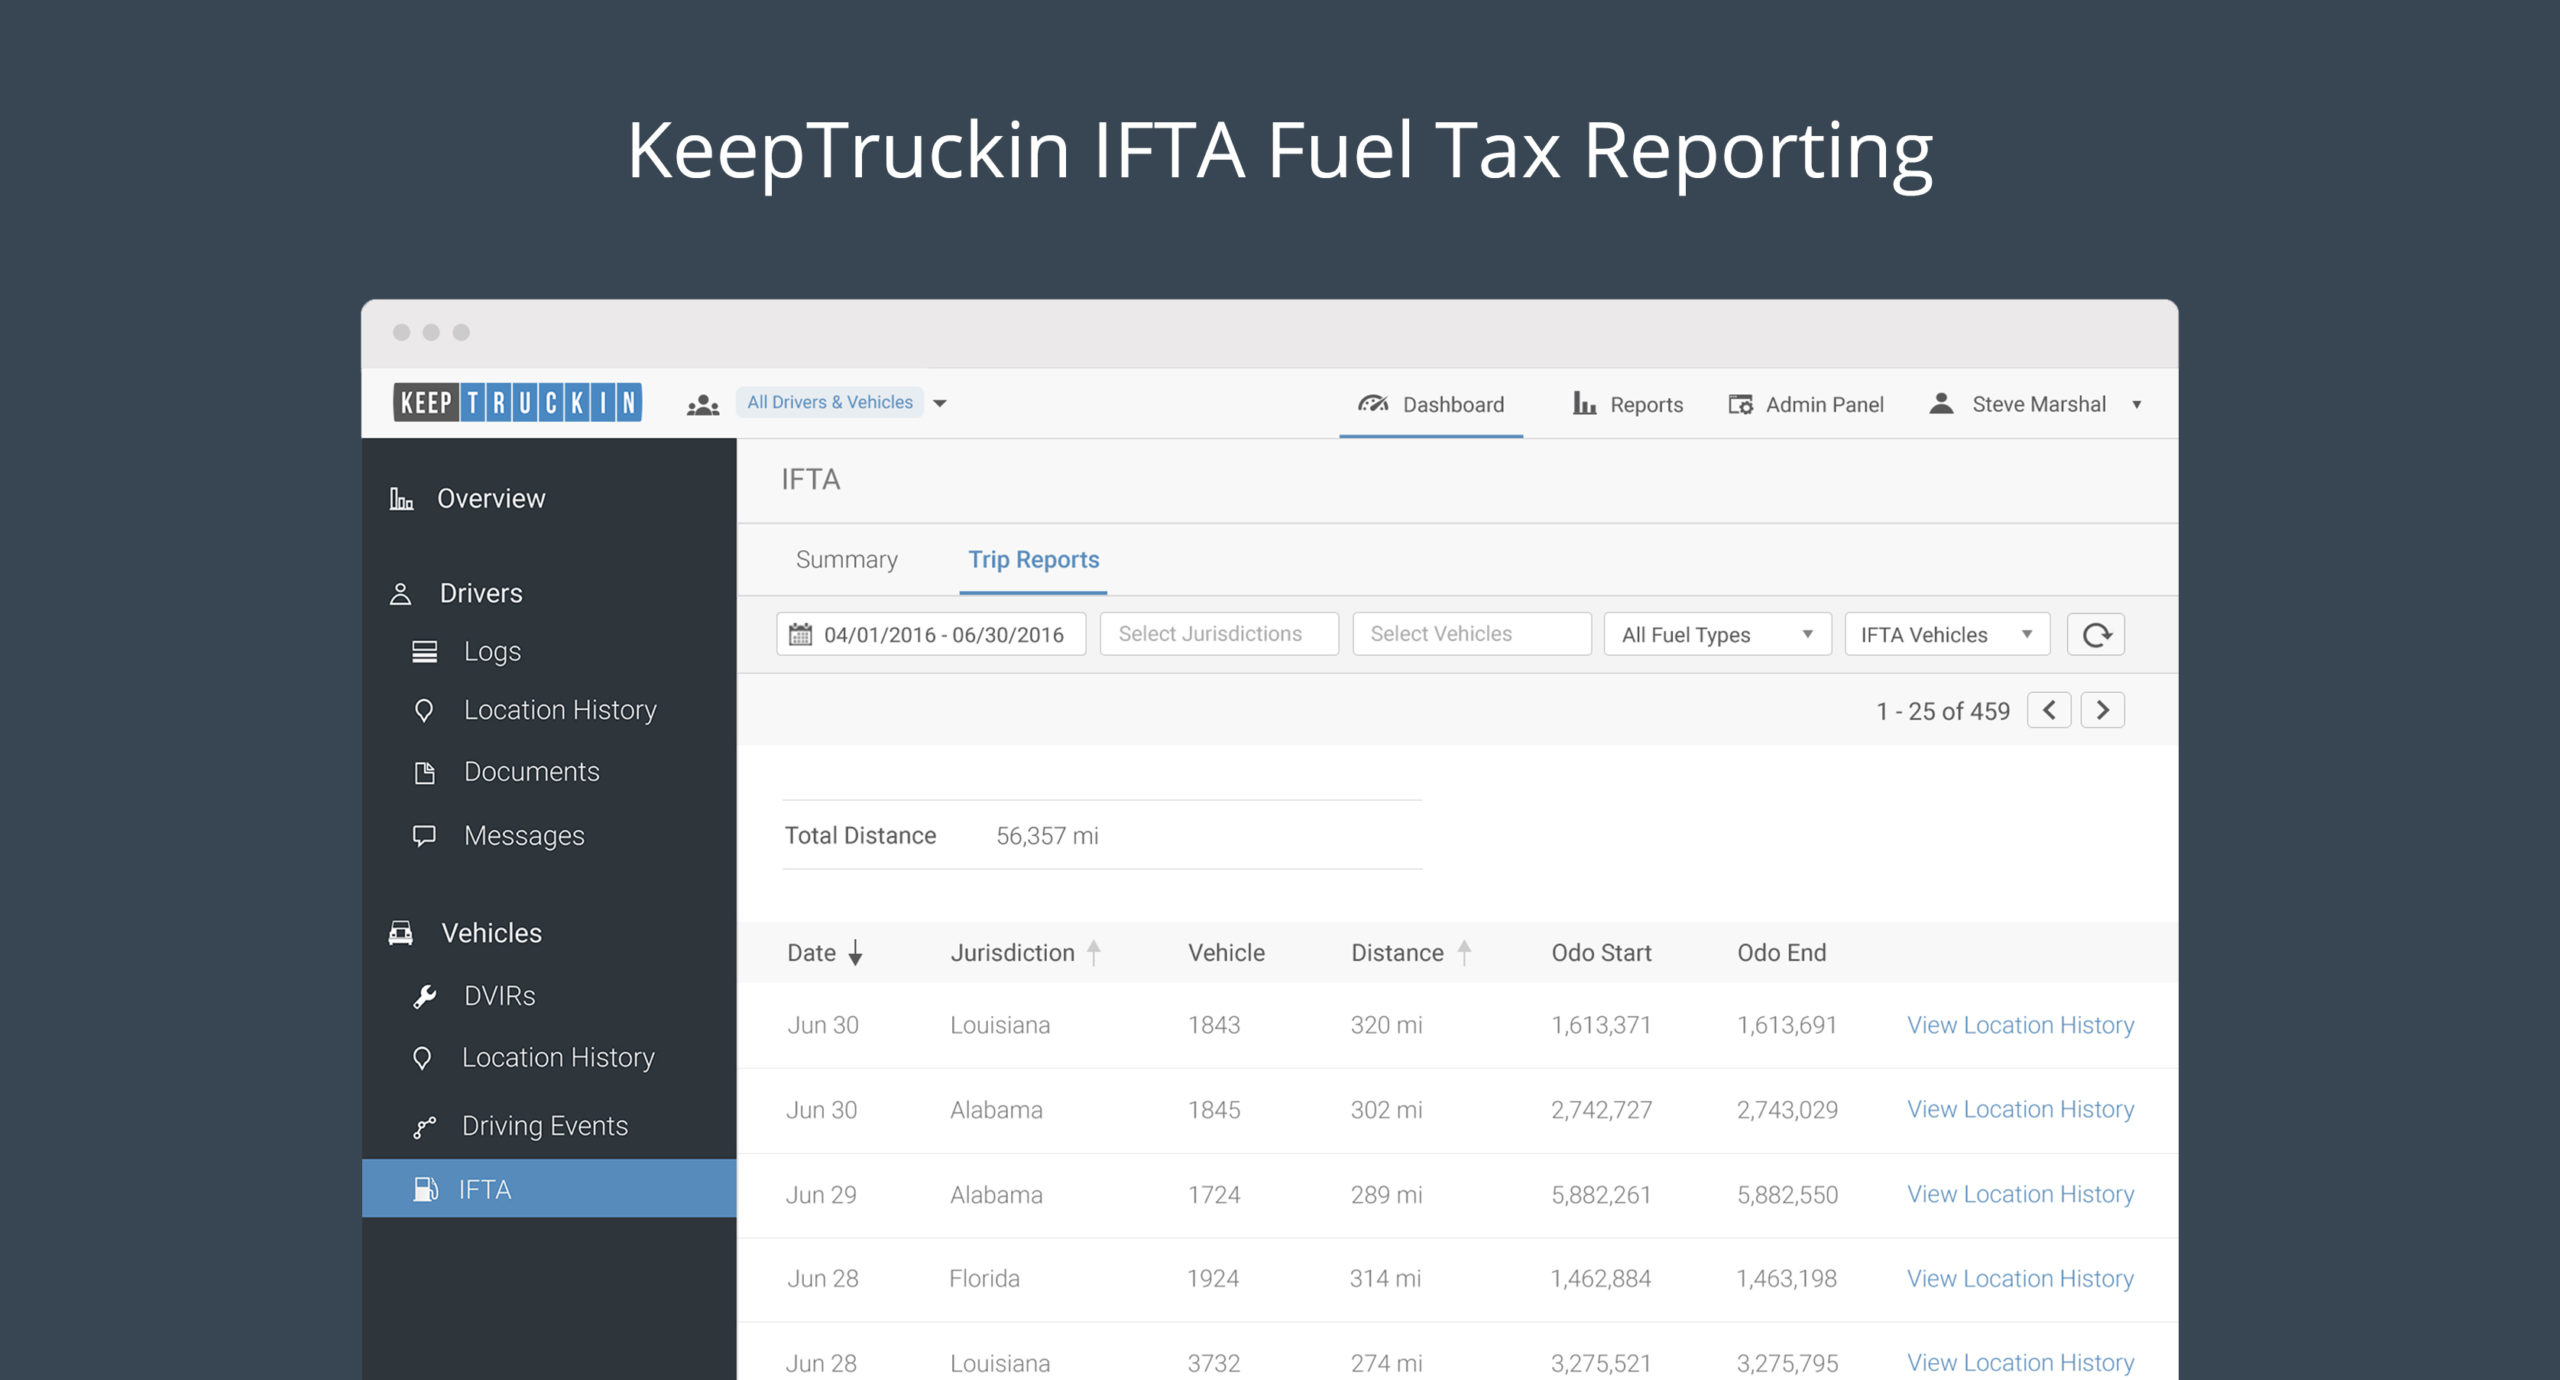 Introducing IFTA Fuel Tax Reporting